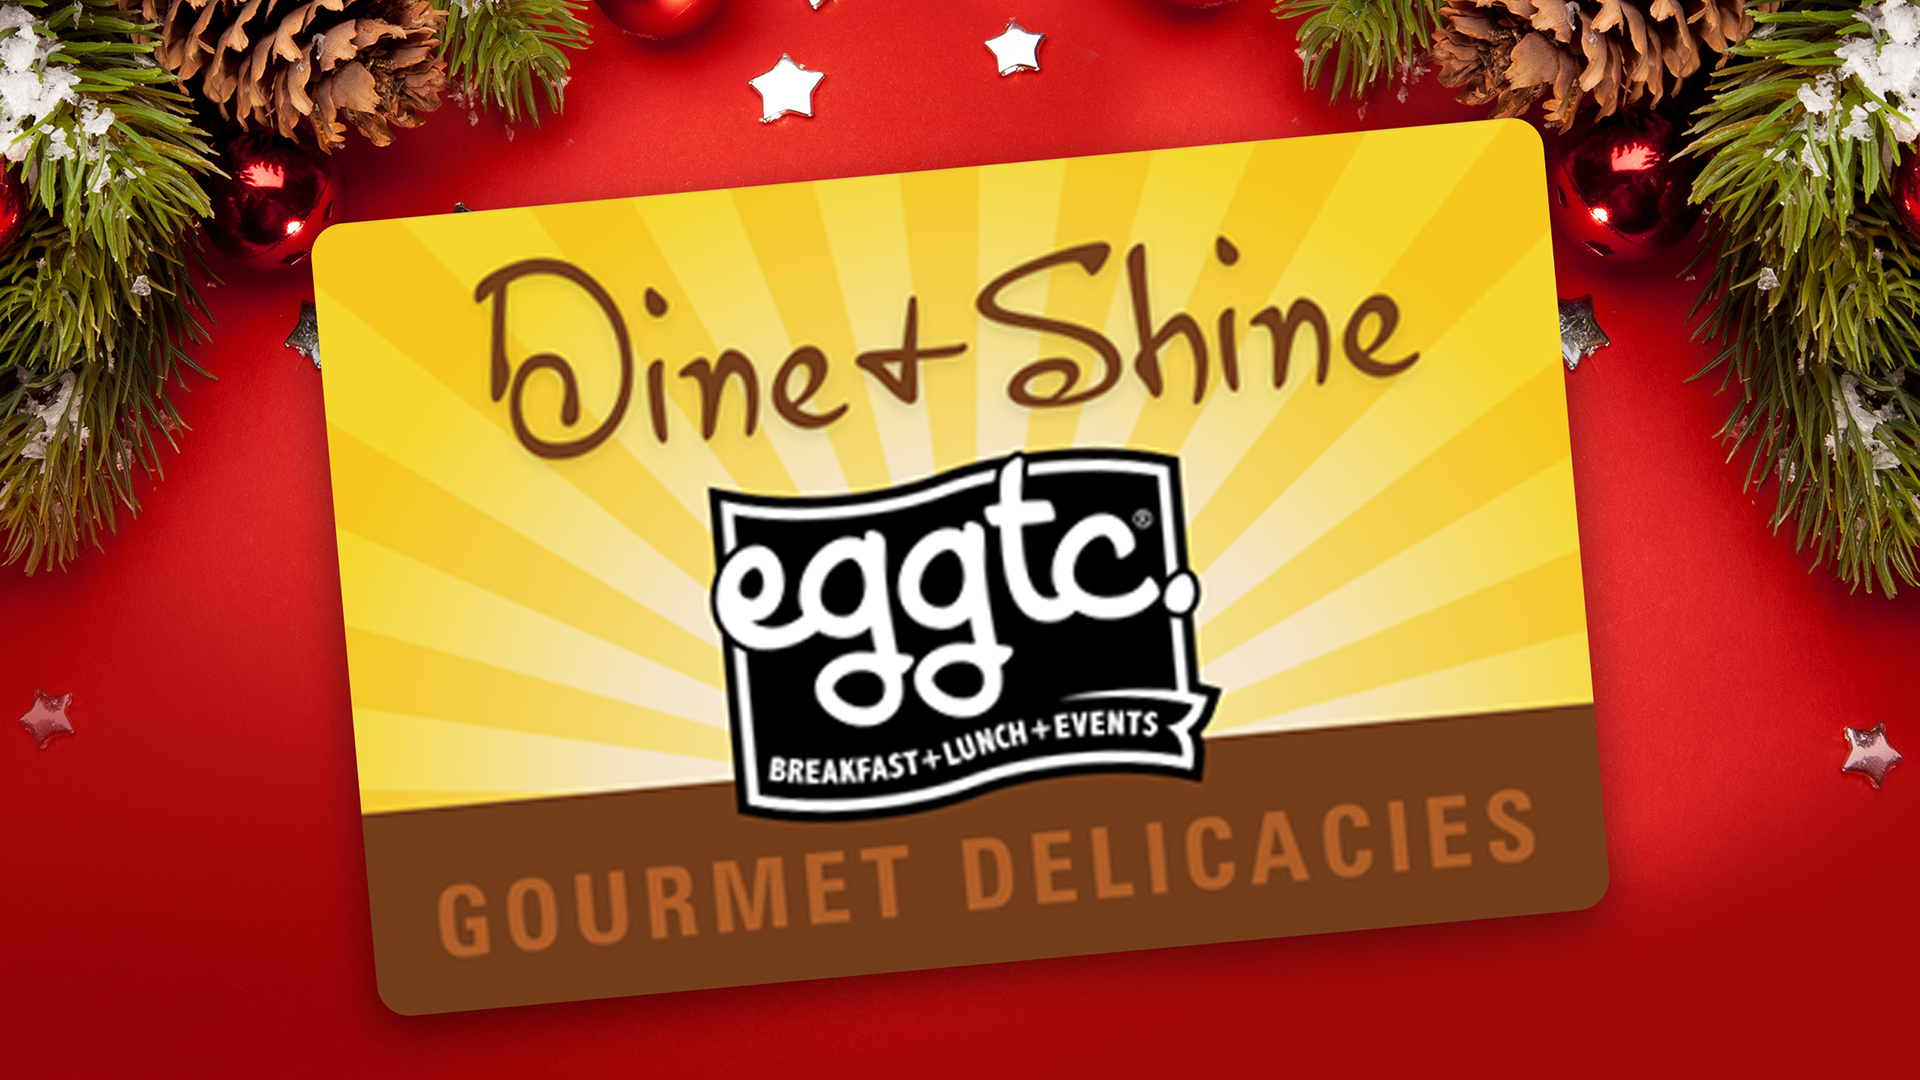 Give Holiday Cheer With Eggtc. E-Gift Cards